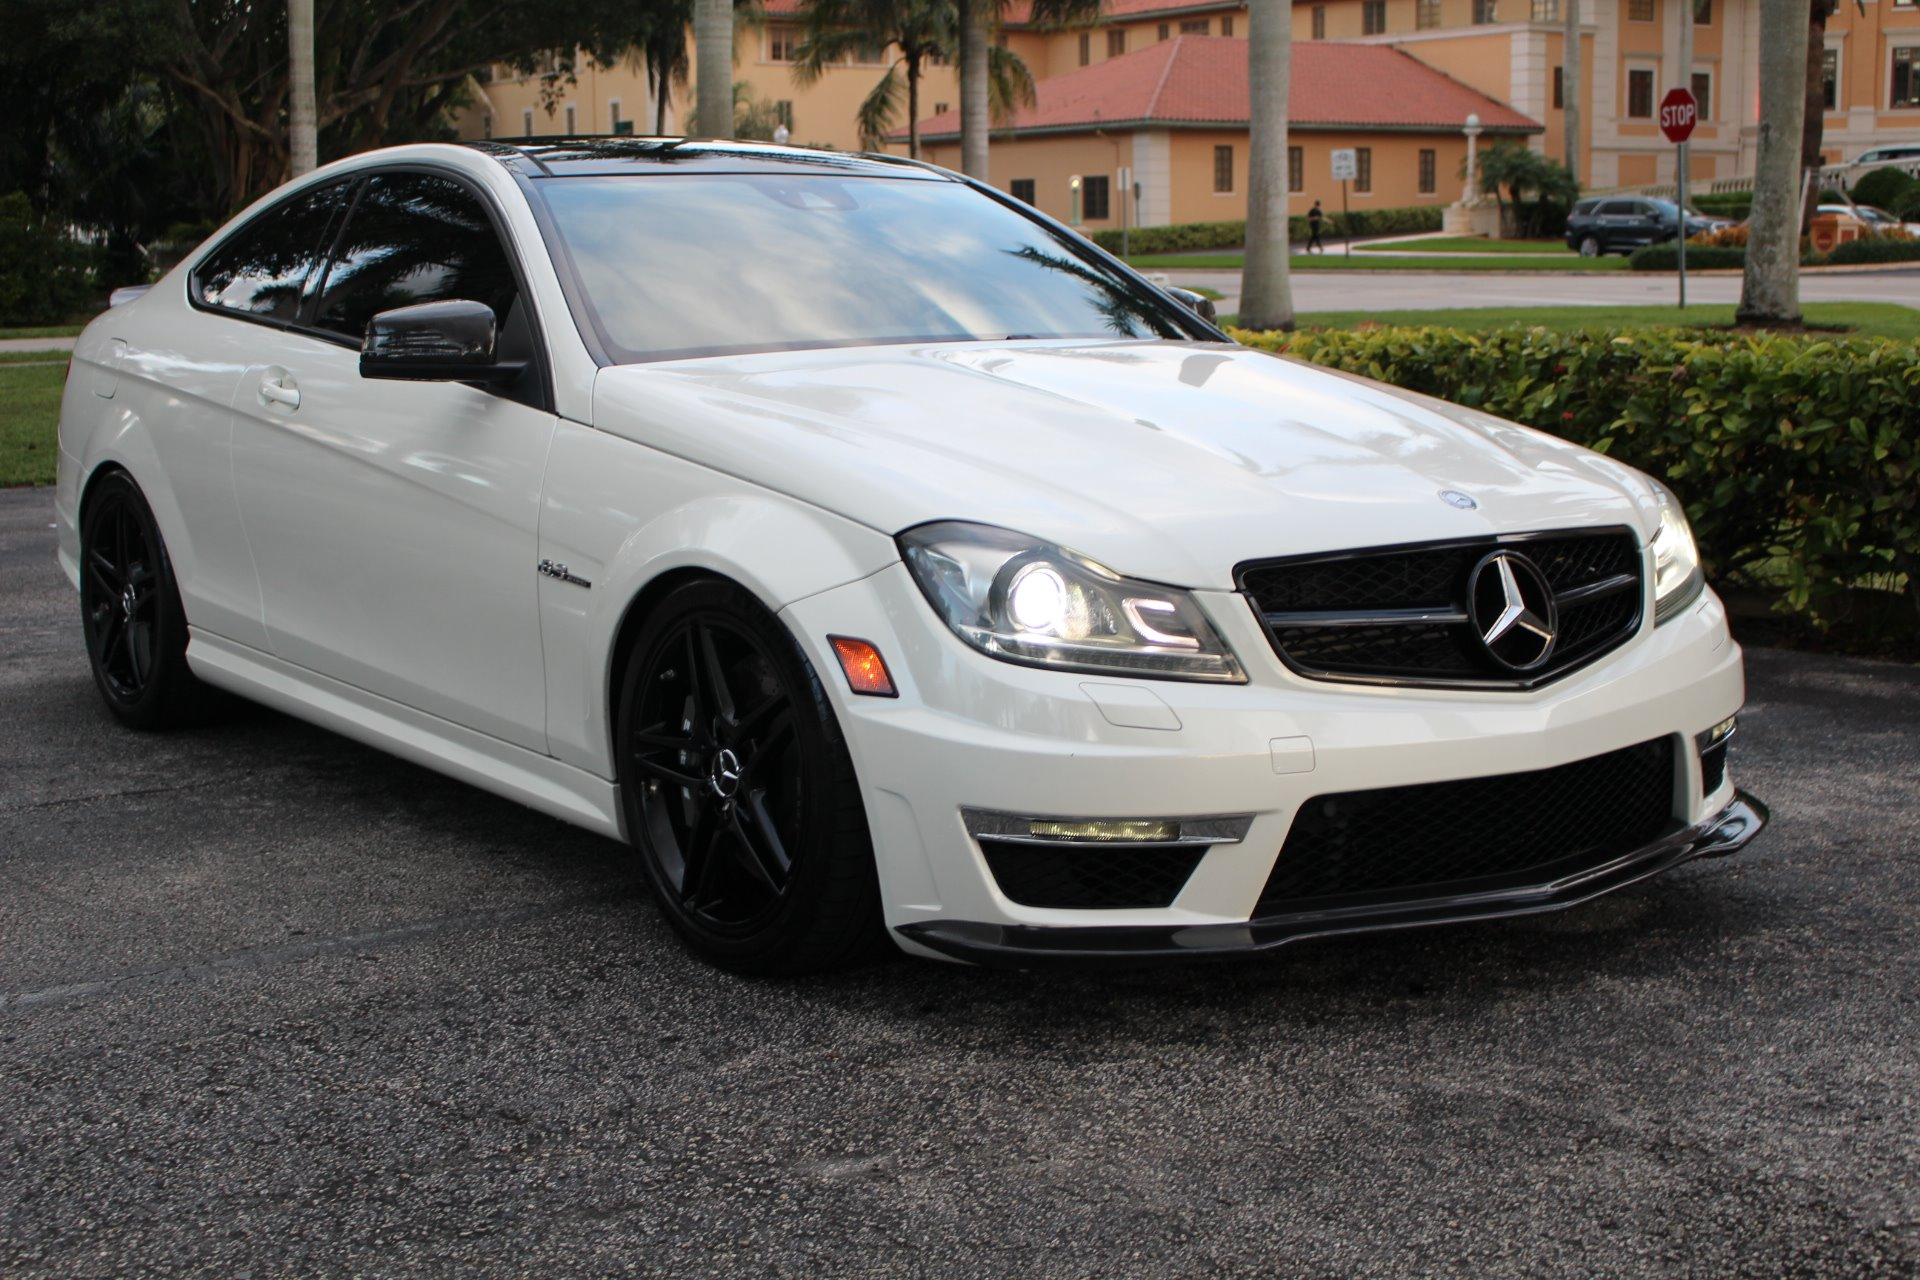 Used 2014 Mercedes-Benz C-Class C 63 AMG for sale Sold at The Gables Sports Cars in Miami FL 33146 4